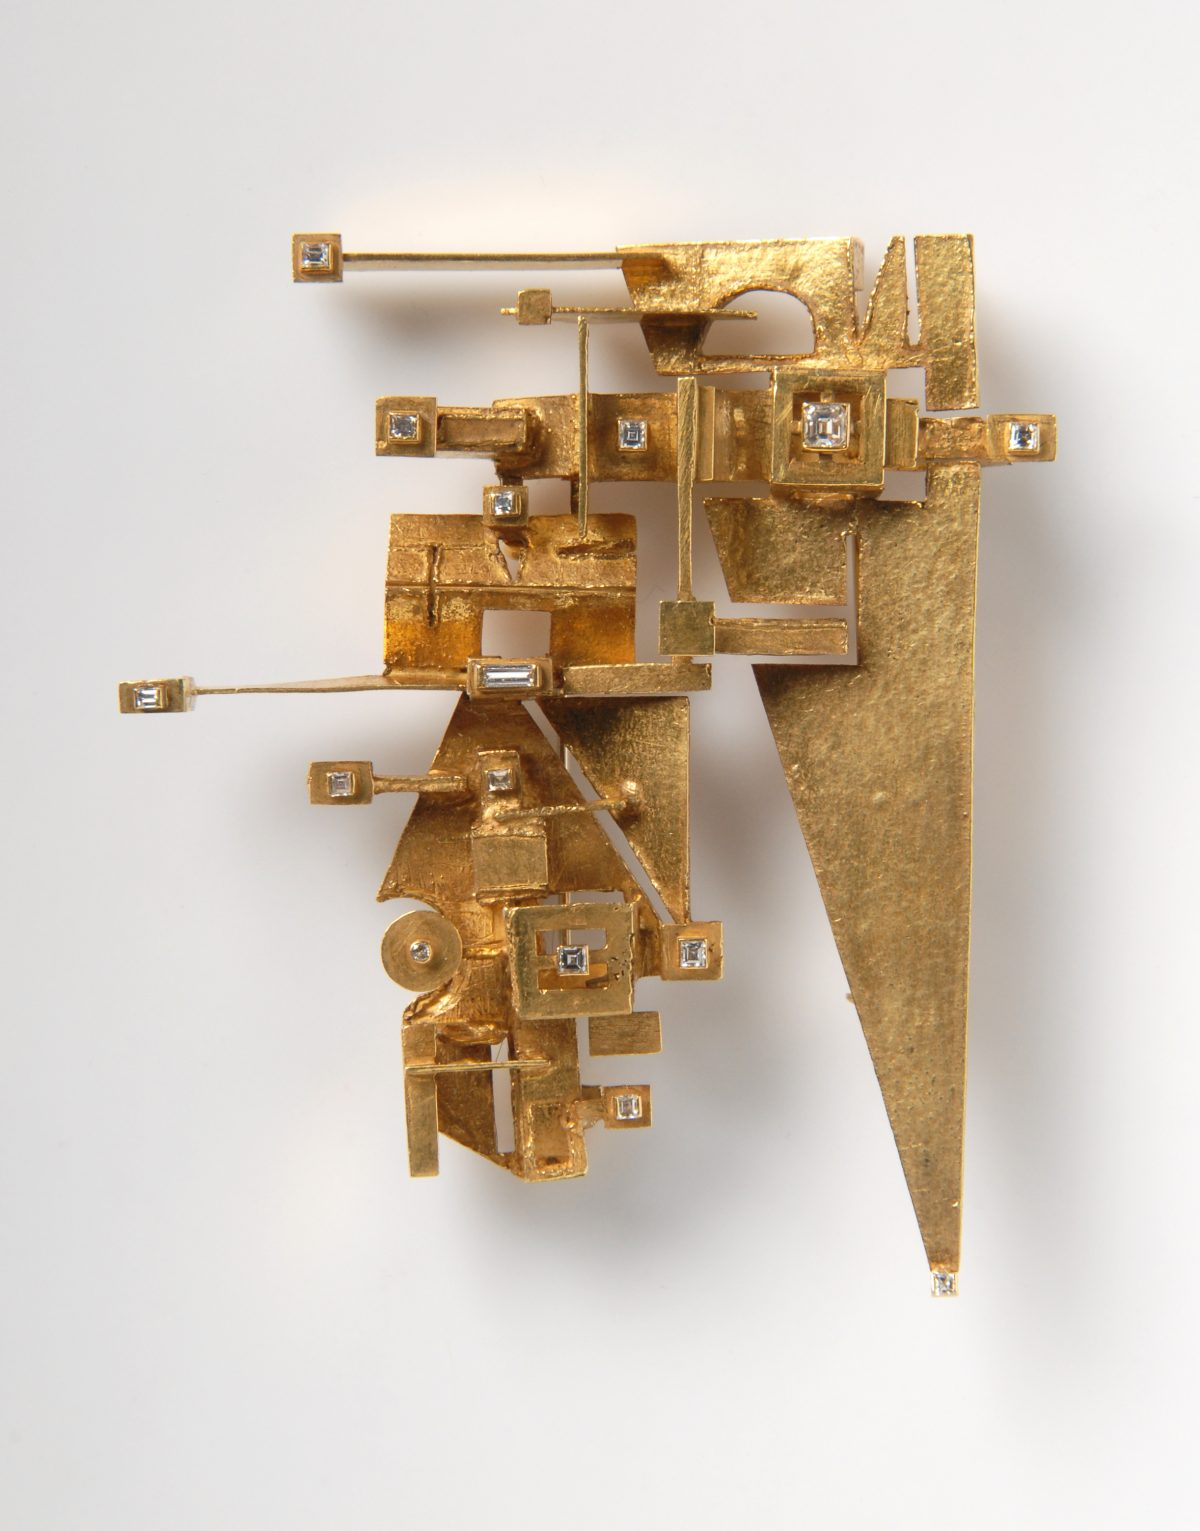 Anton Frühauf, brooch, 1960s, gold, diamonds, h. 7,7 cm, w. 6,3 cm, Die Neue Sammlung – Permanent loan from Danner Foundation, Munich, Photo: Die Neue Sammlung (Alexander Laurenzo)